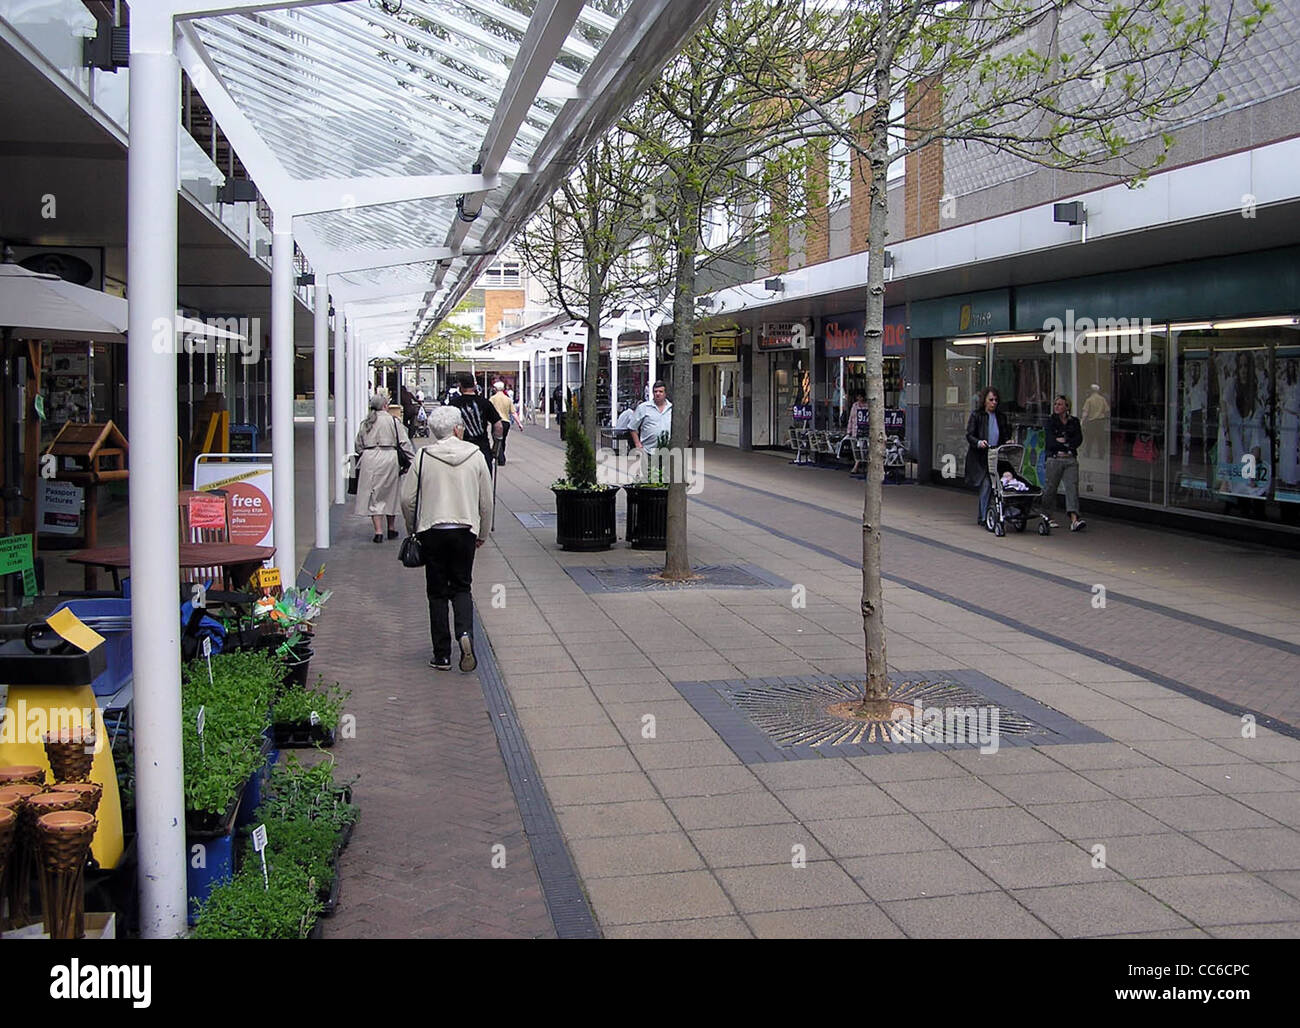 Yate shopping centre has over one hundred shops in a traffic-free precinct. Stock Photo